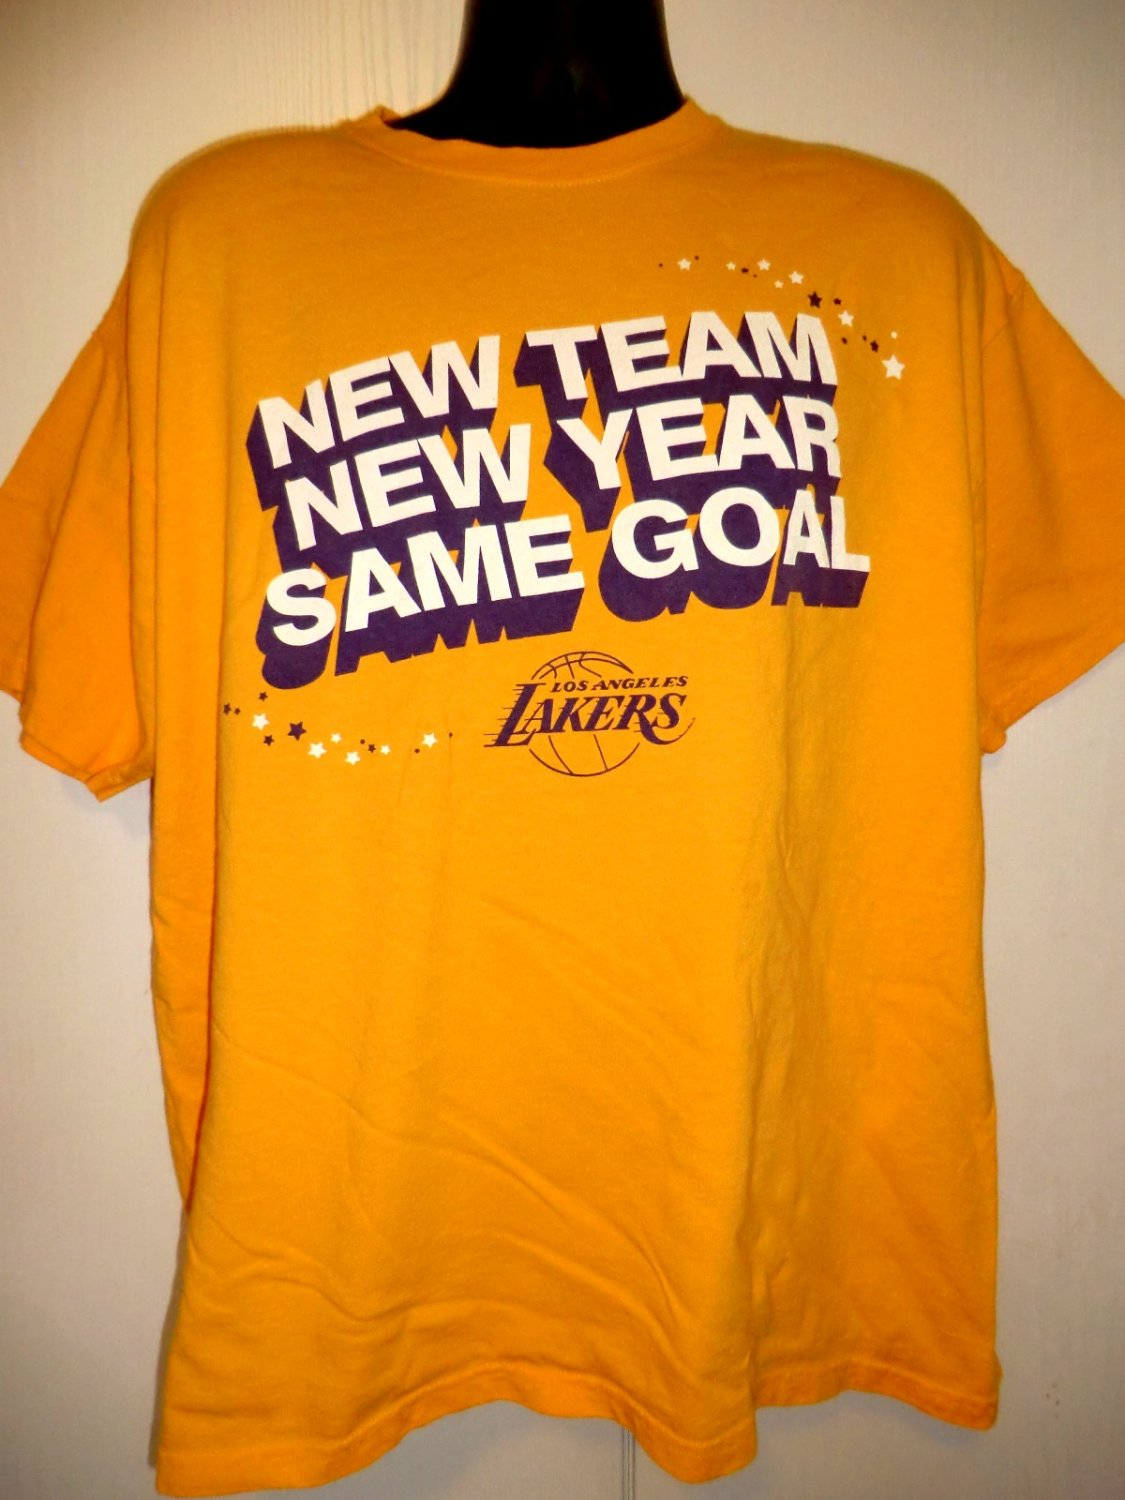 Los Angeles Lakers T-Shirt Size XL New Team New Year Same Goal